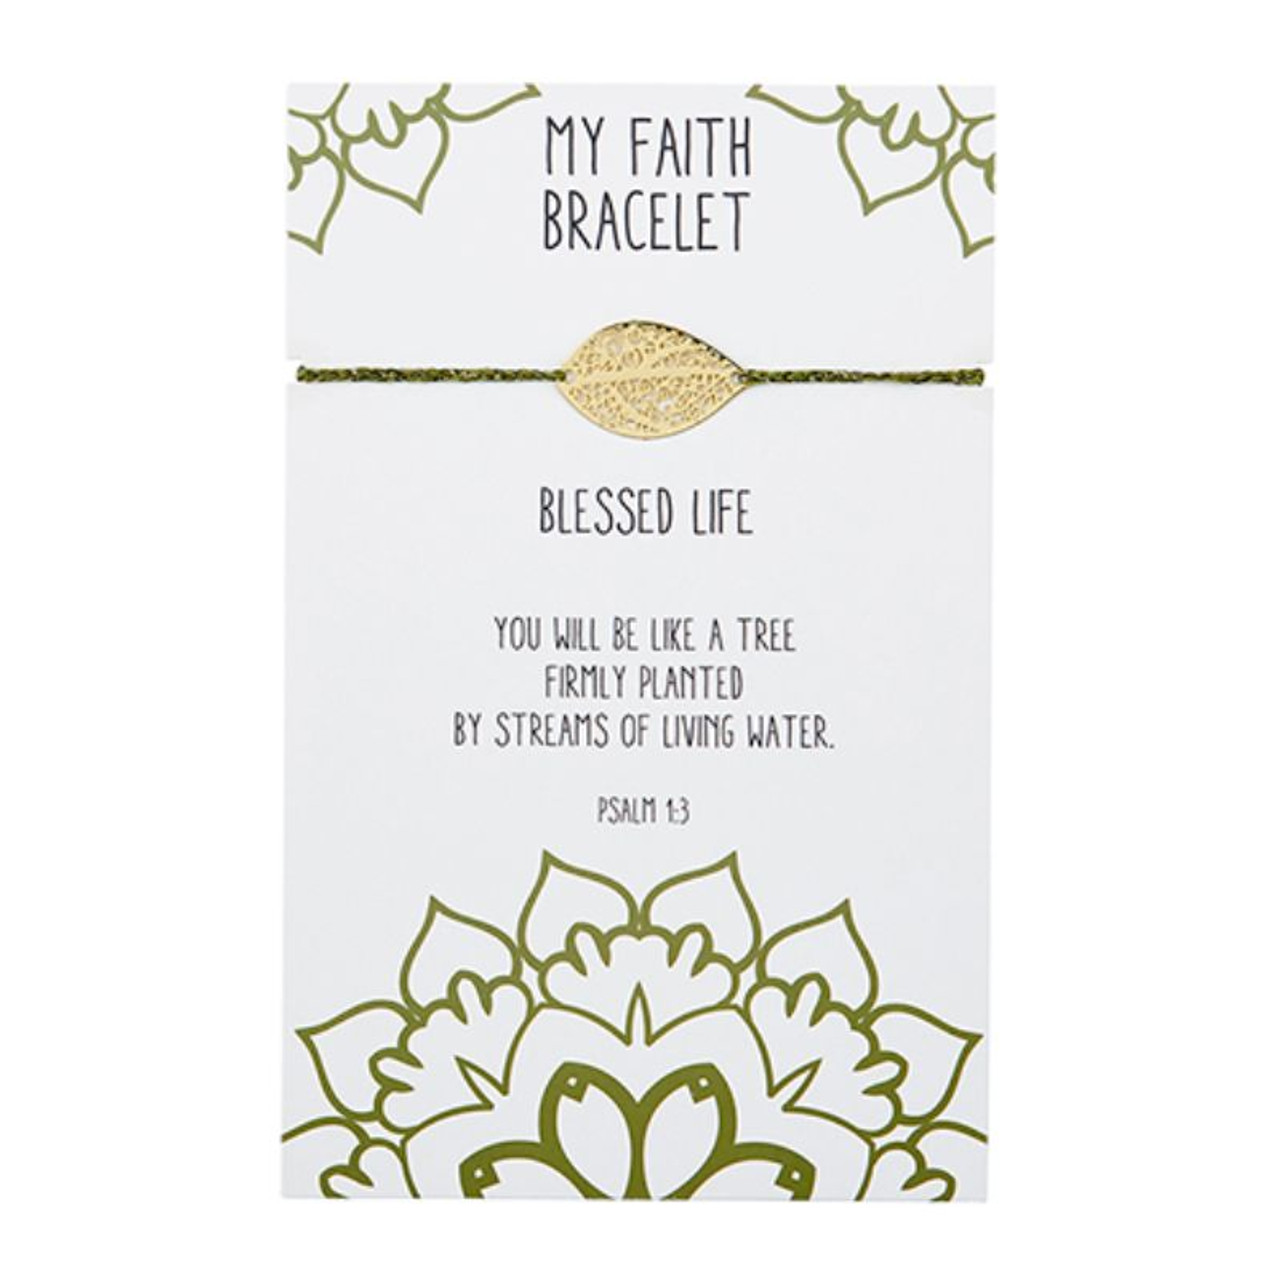 Beautifully designed, this easy to wear adjustable bracelet with center brass filigree leaf charm is great to wear alone or stacked with other bracelets. A thoughtful gift at an attractive price point! Backer card includes corresponding Bible verse Psalm 1:3.